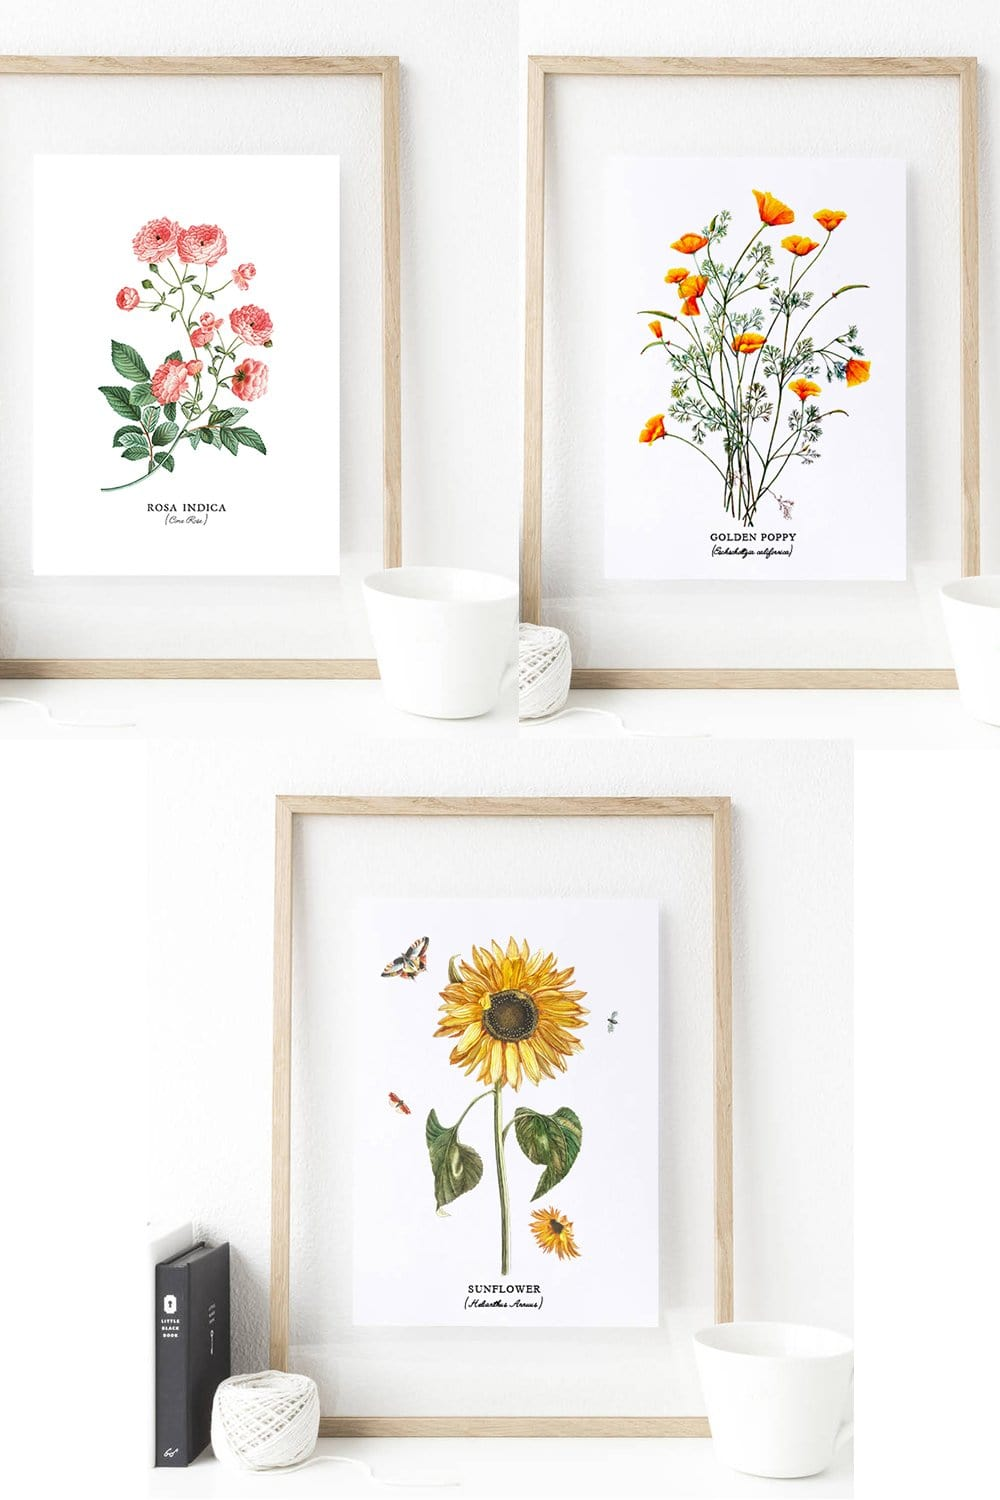 Set of 3 Botanical Sunflower Print Art - Thrill your walls now with this stunning Botanical print art set of sunflower, golden poppy, and rosa indica flowers. Any flower fanatics would cherish these one of a kind illustrations as a gift